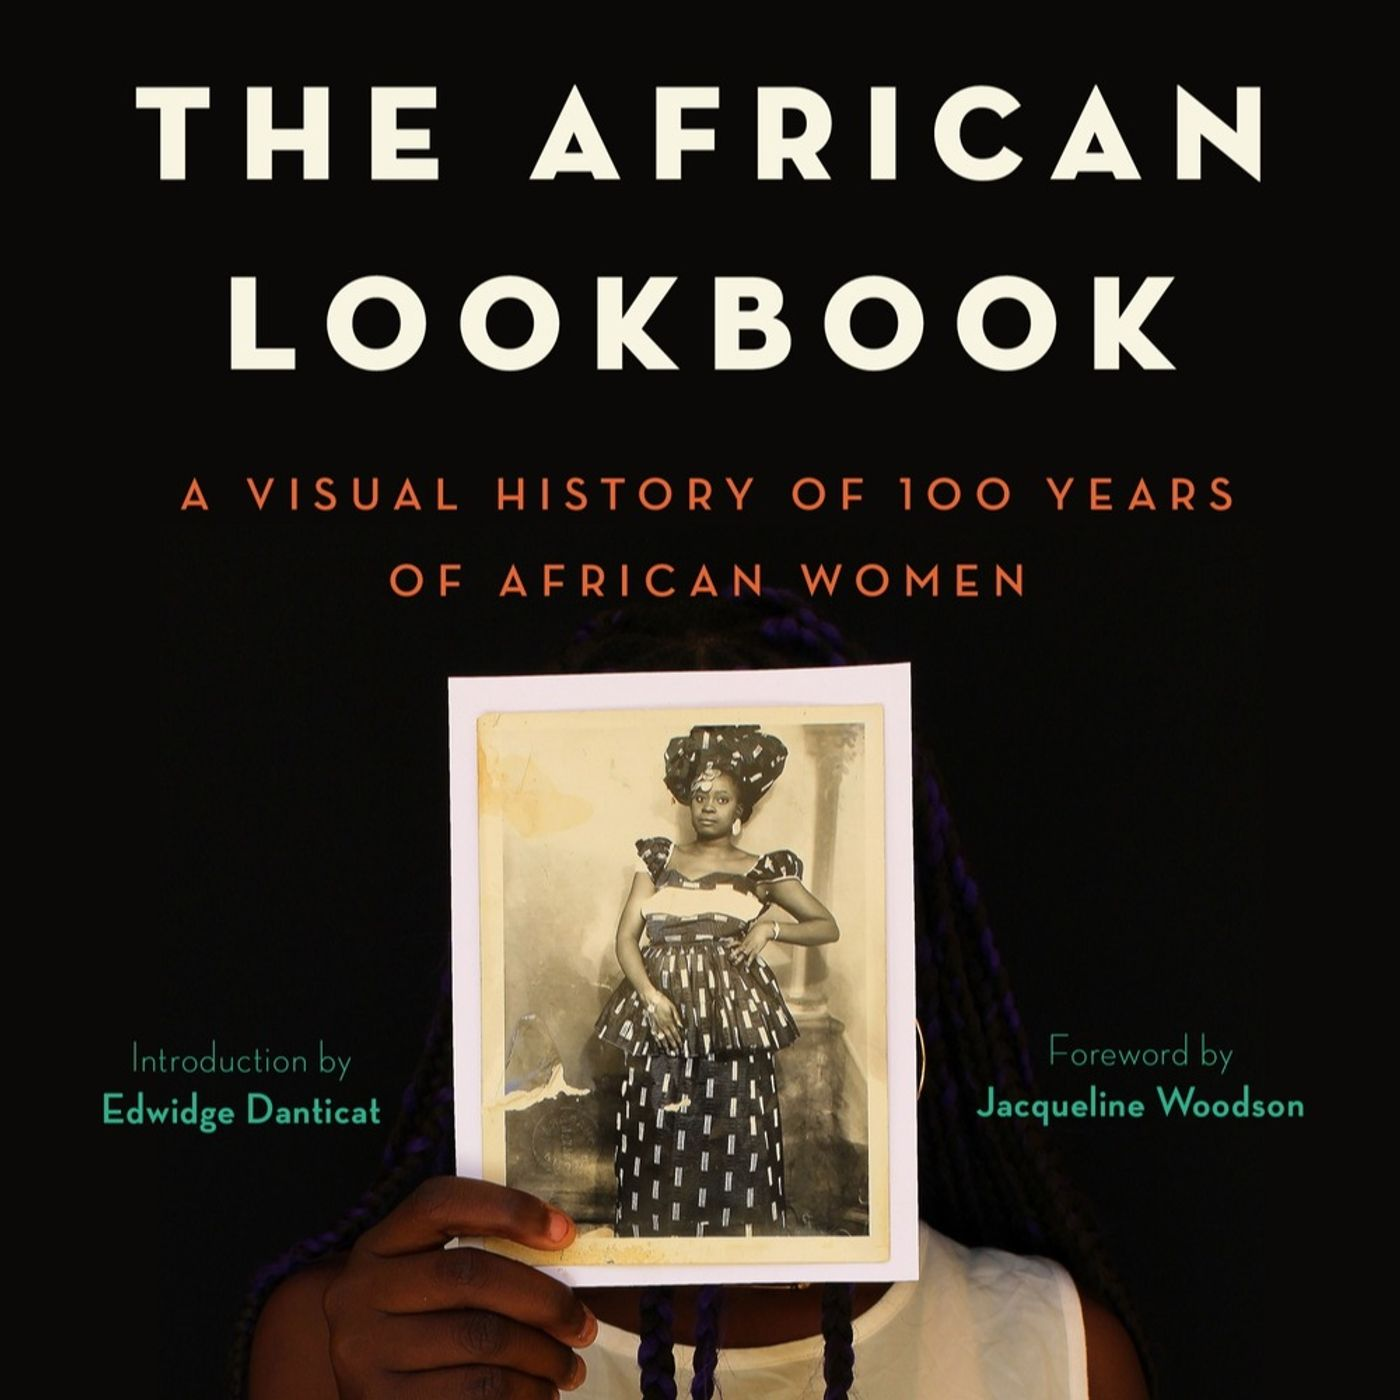 The African Lookbook with Catherine McKinley